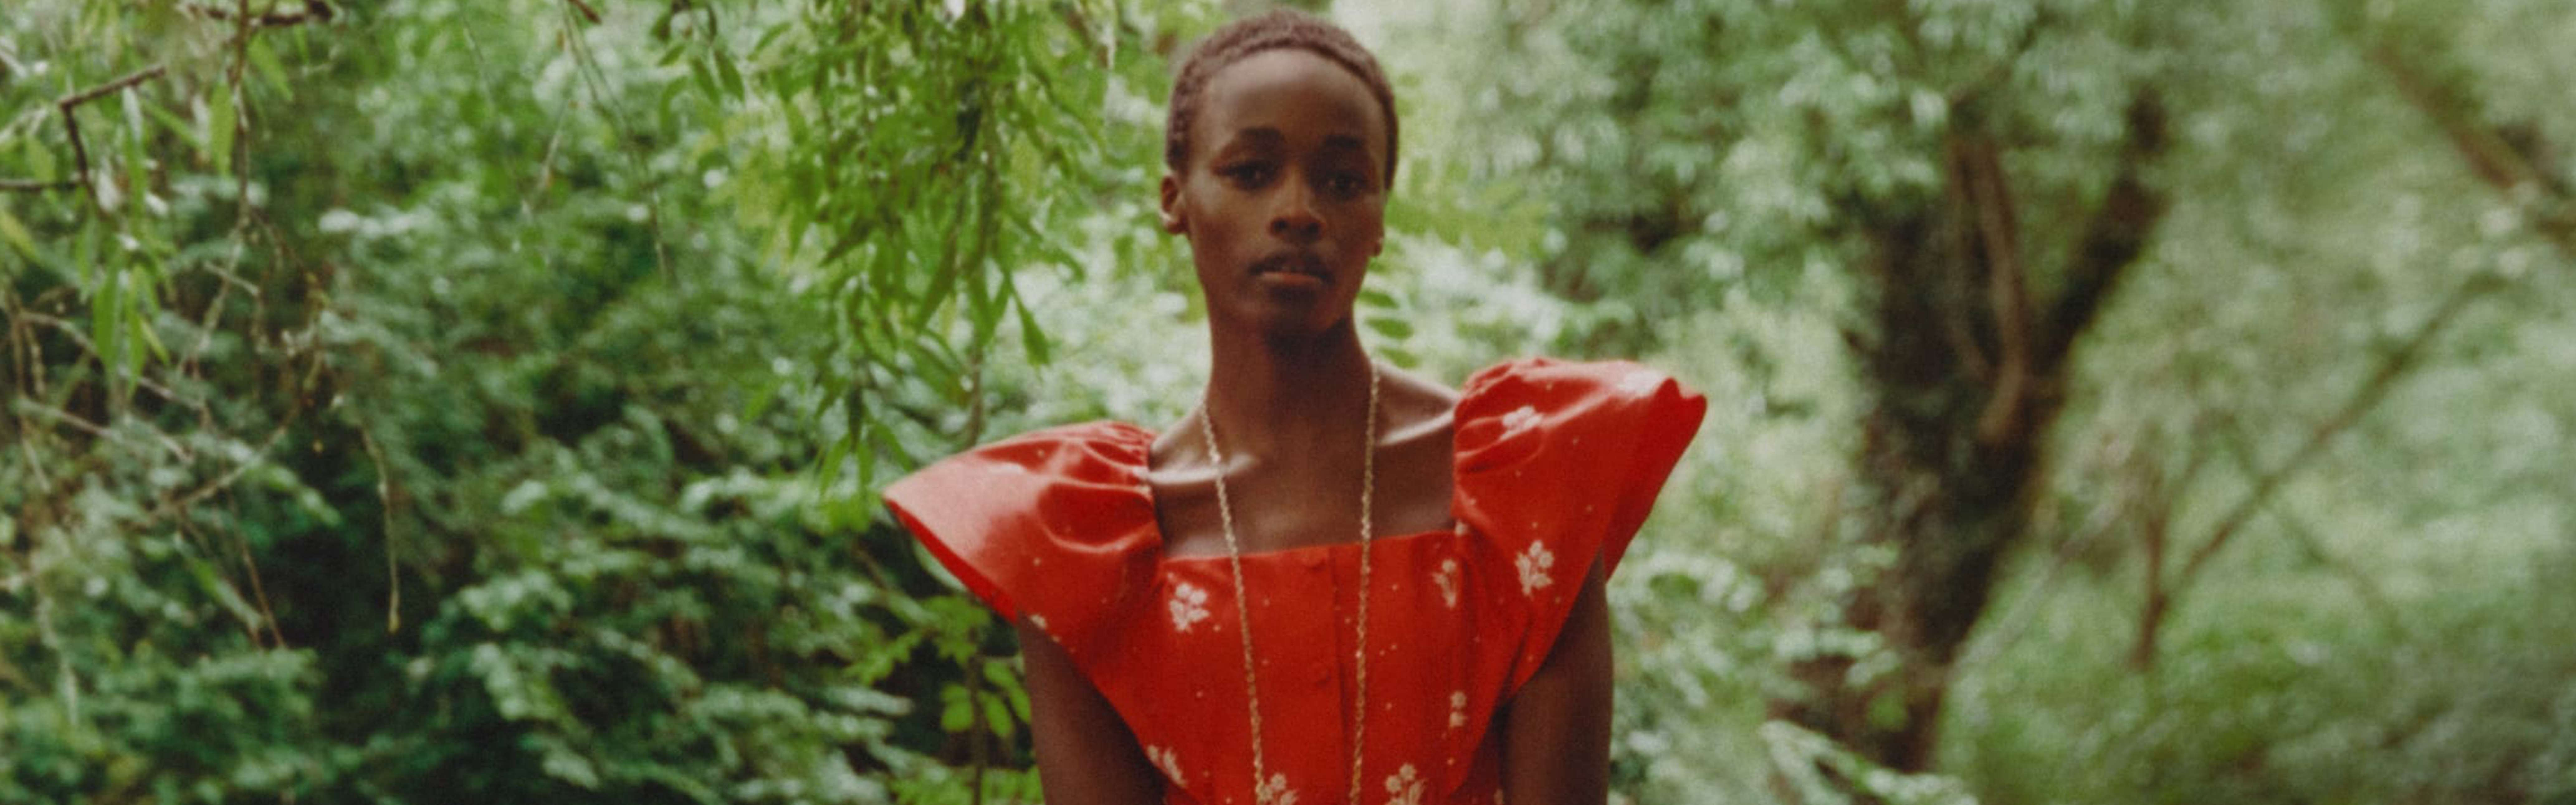 Model in statement red, bold shoulder, ERDEM luxury dress, accessorised with a long necklace.